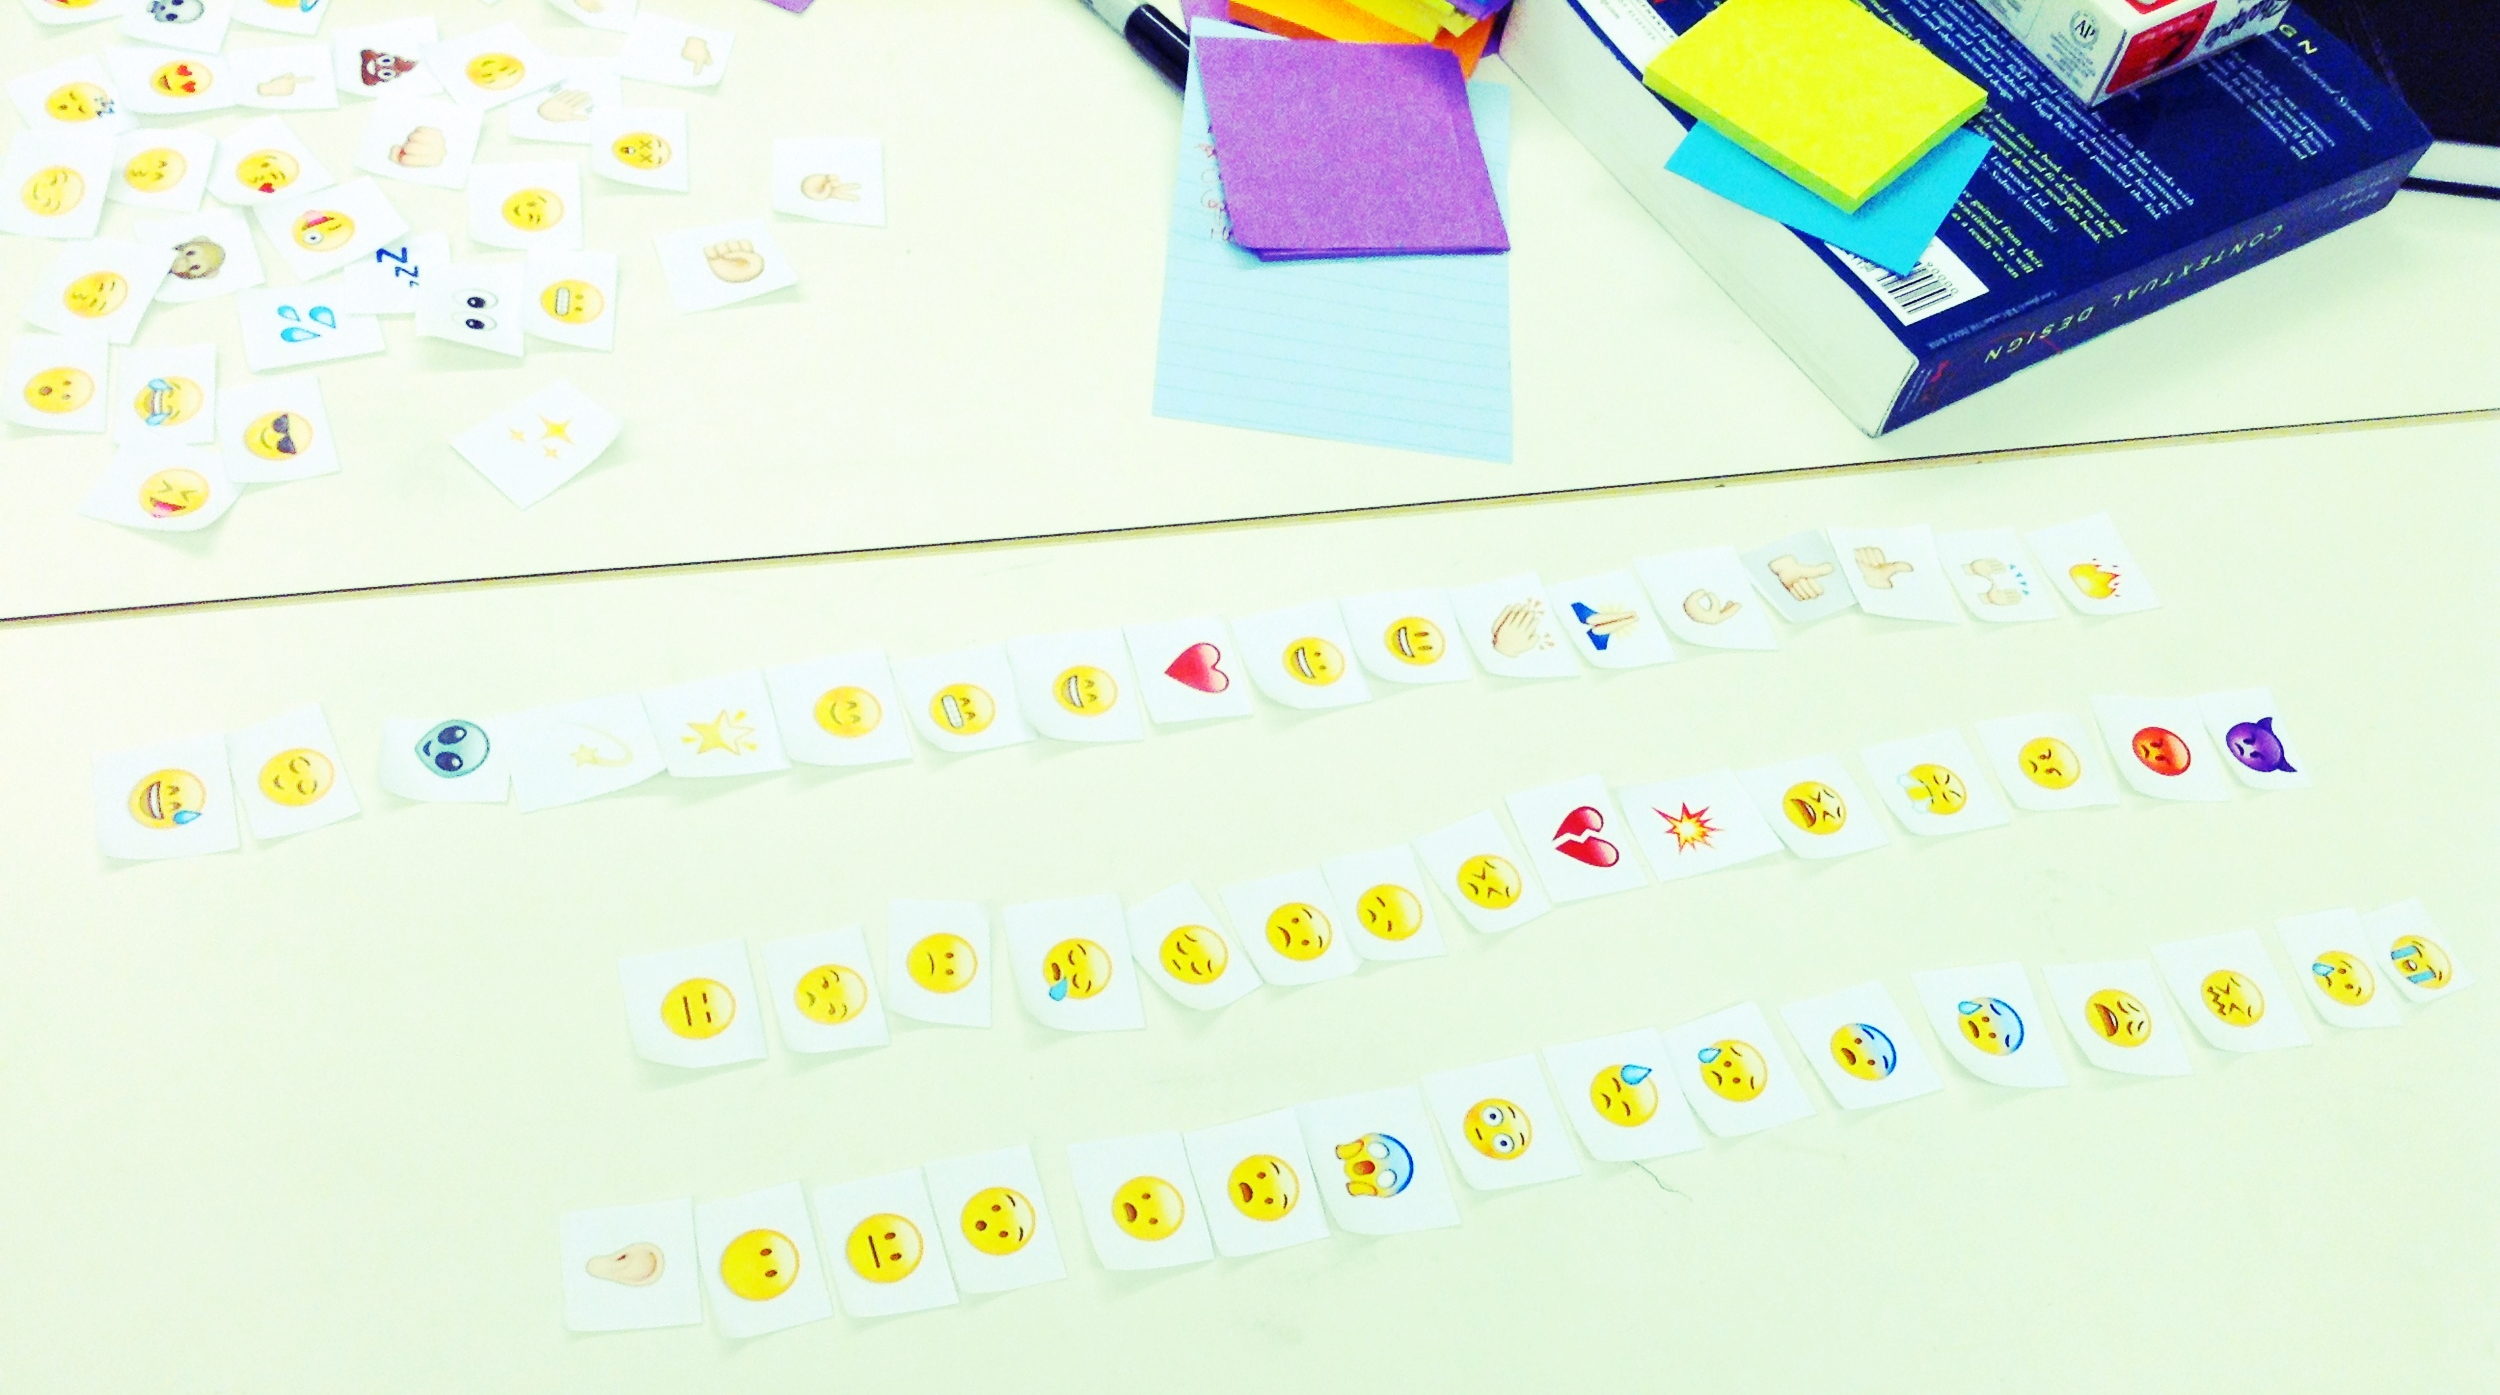 Card sorting of emojis by a participant with Western culture background